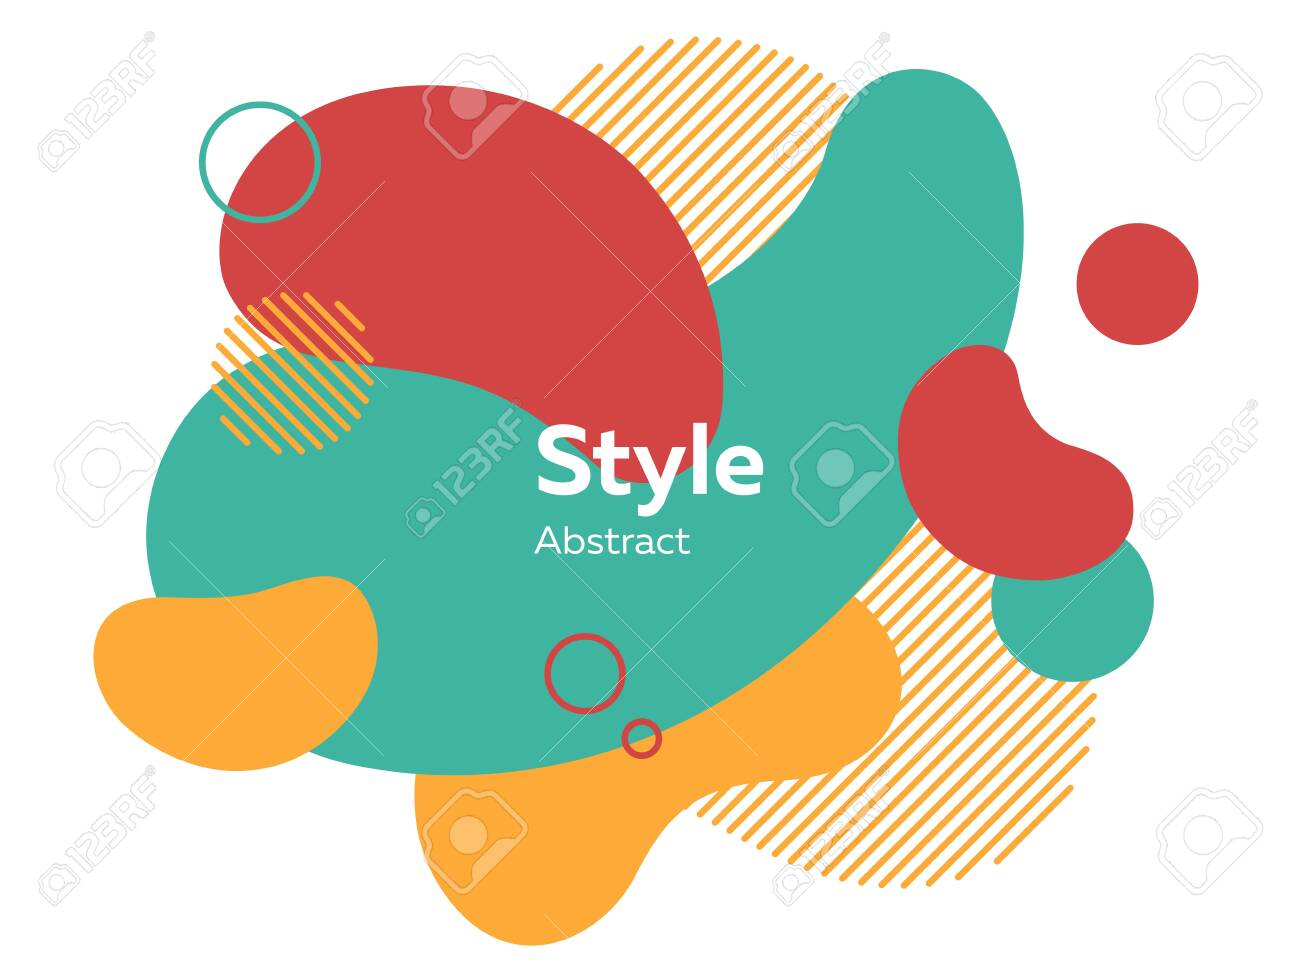 Red, yellow and green abstract elements. Hatched shapes, circles, layers, dynamical forms with text sample. Vector illustration for banner, poster, cover design - 128508524